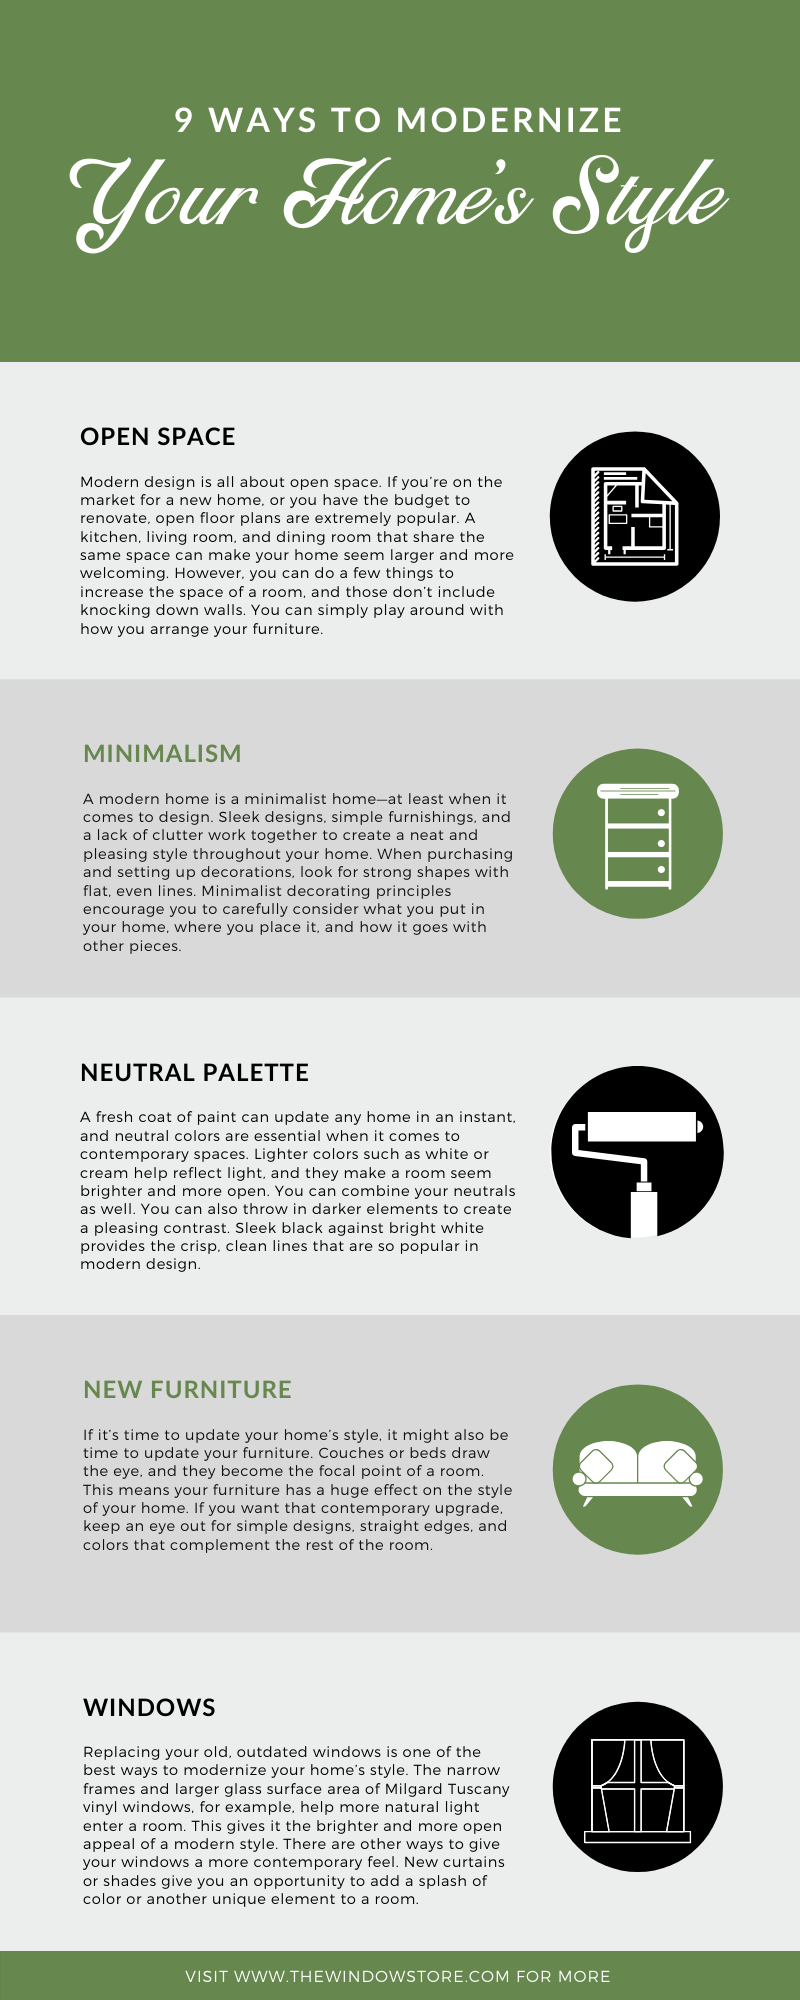 9 Ways to Modernize Your Home's Style infographic